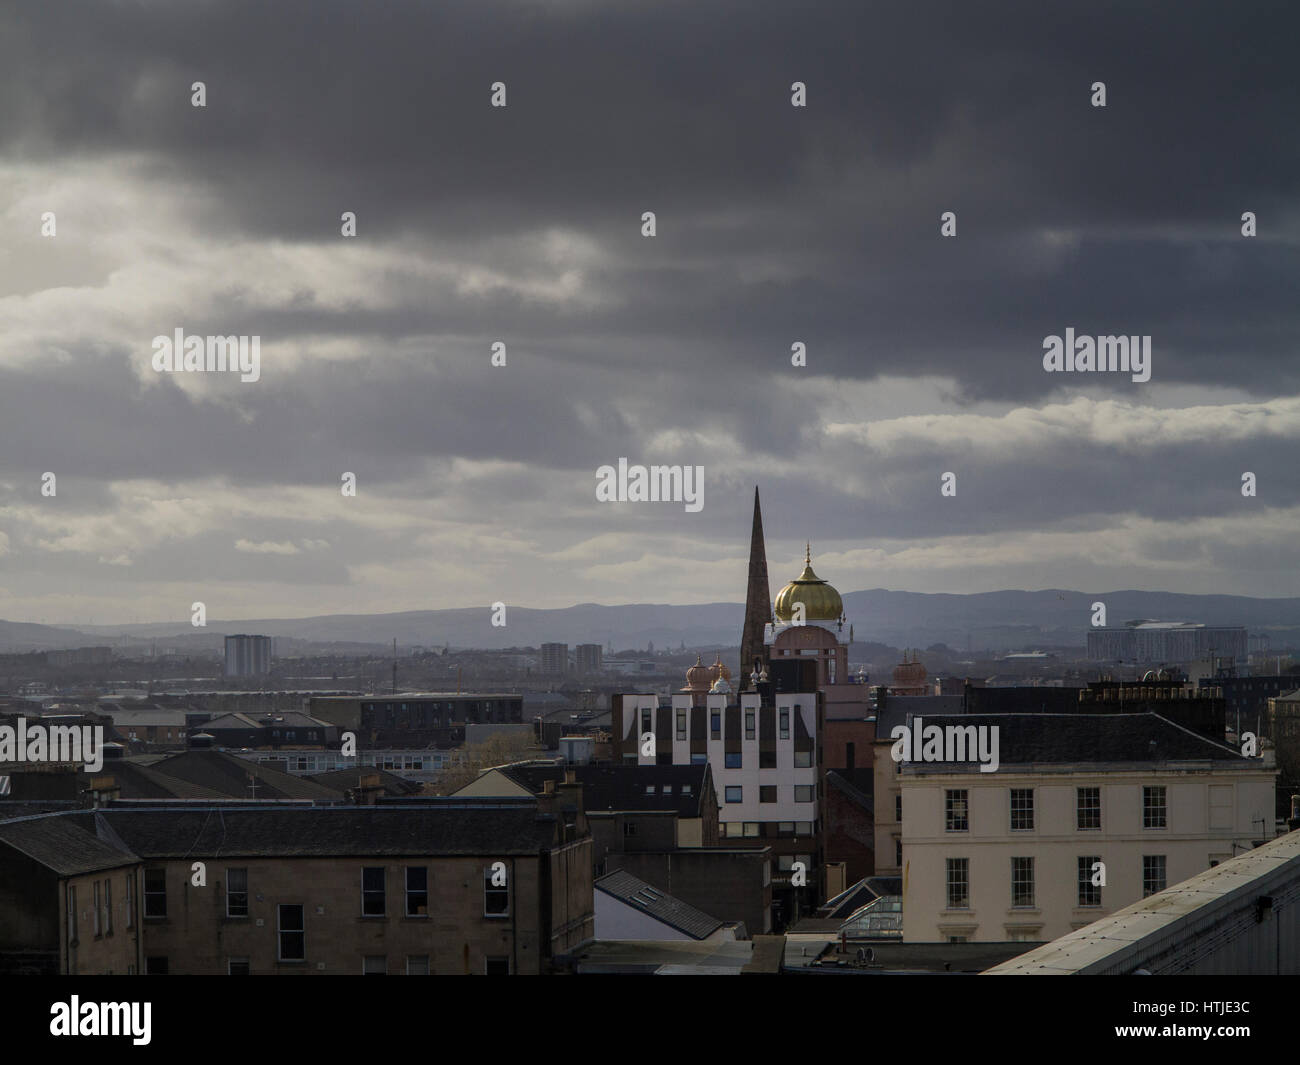 Glasgow Central Mosque and skyline - Stock Image